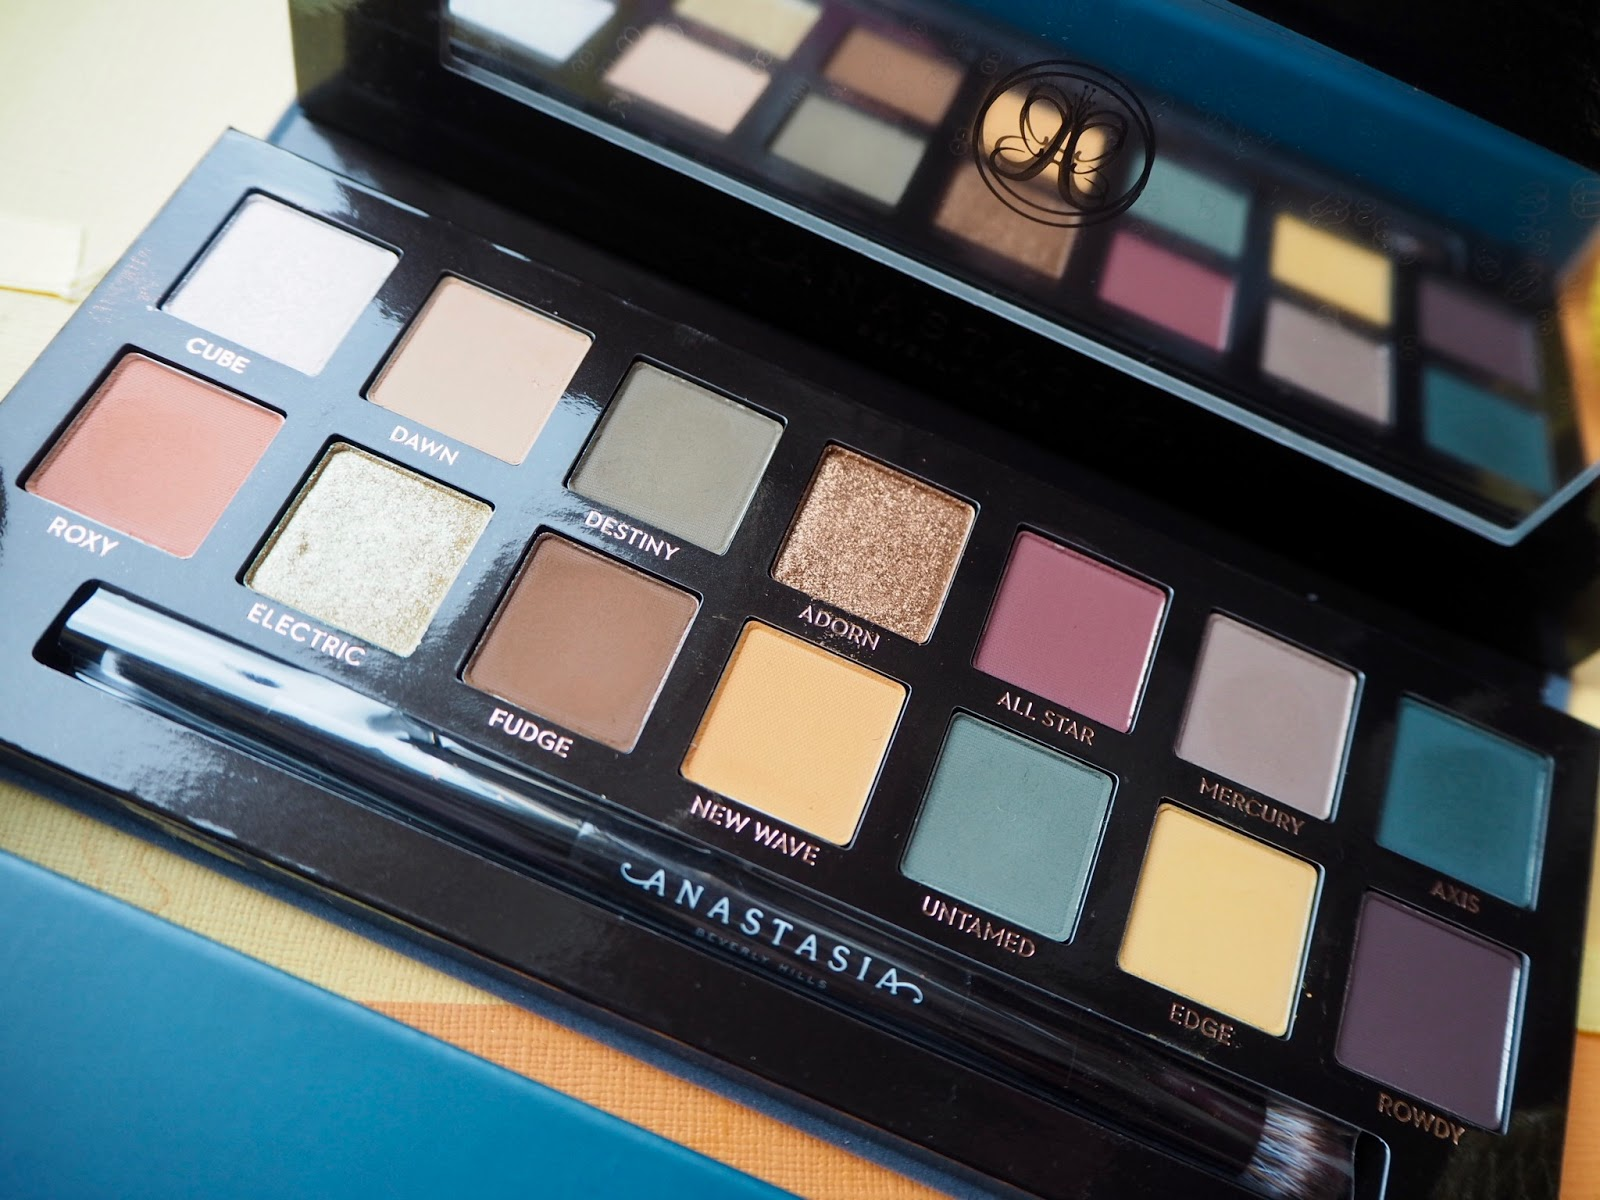 Anastasia Beverly Hills (ABH) Subculture Palette Review + Swatches